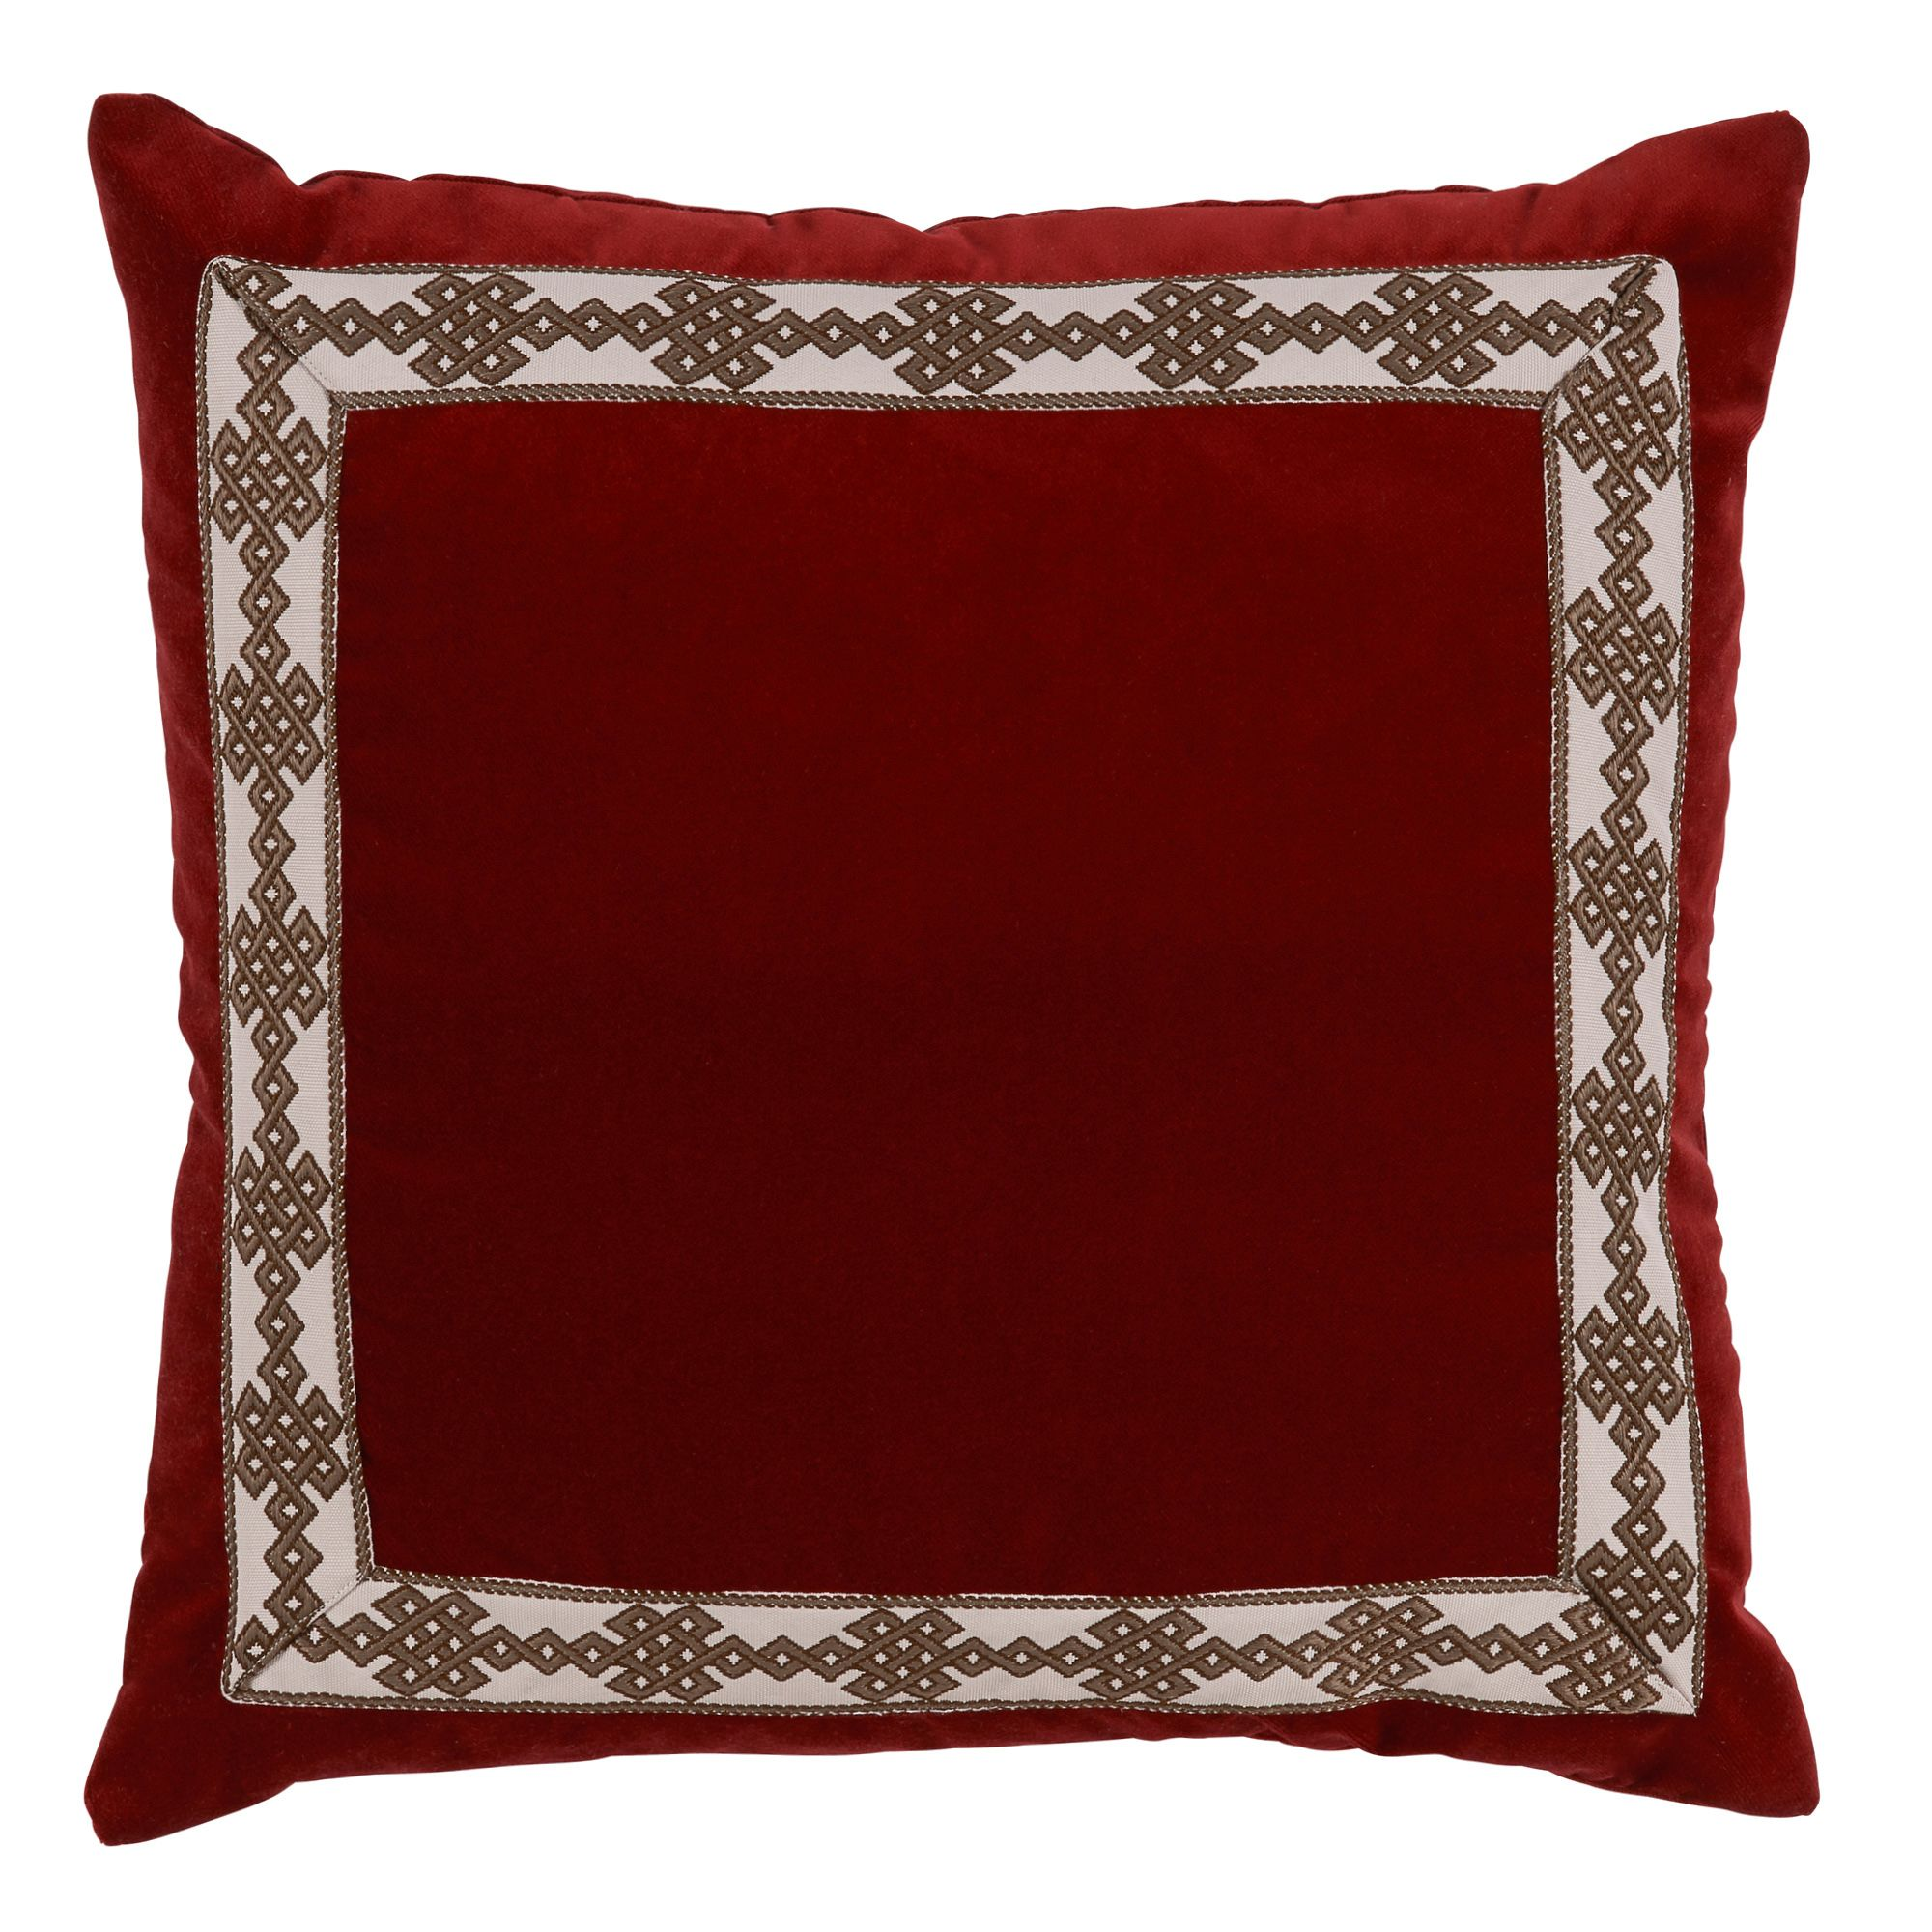 red rectangle decorative anchor p nautical pillow pillows v flanged throw